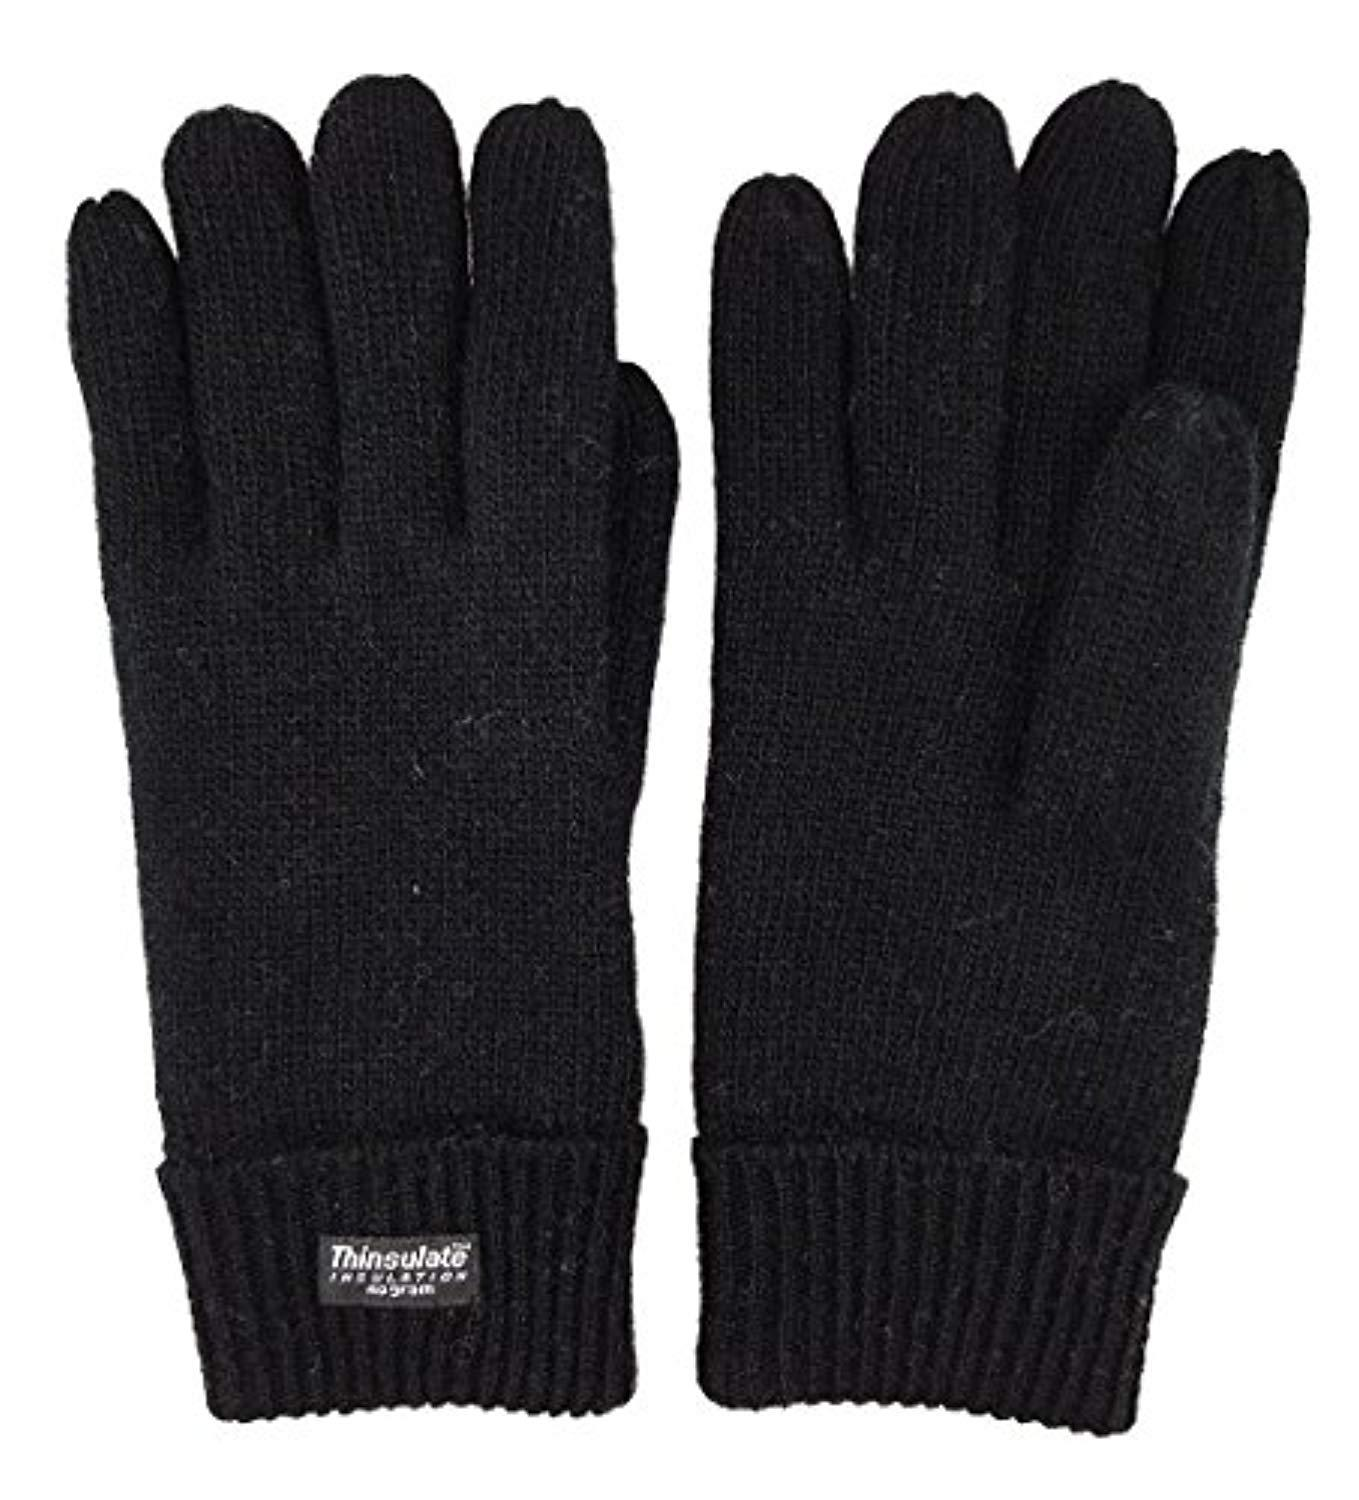 Thinsulate Extreme Thermal lined knitted Gloves black Small Medium One Size